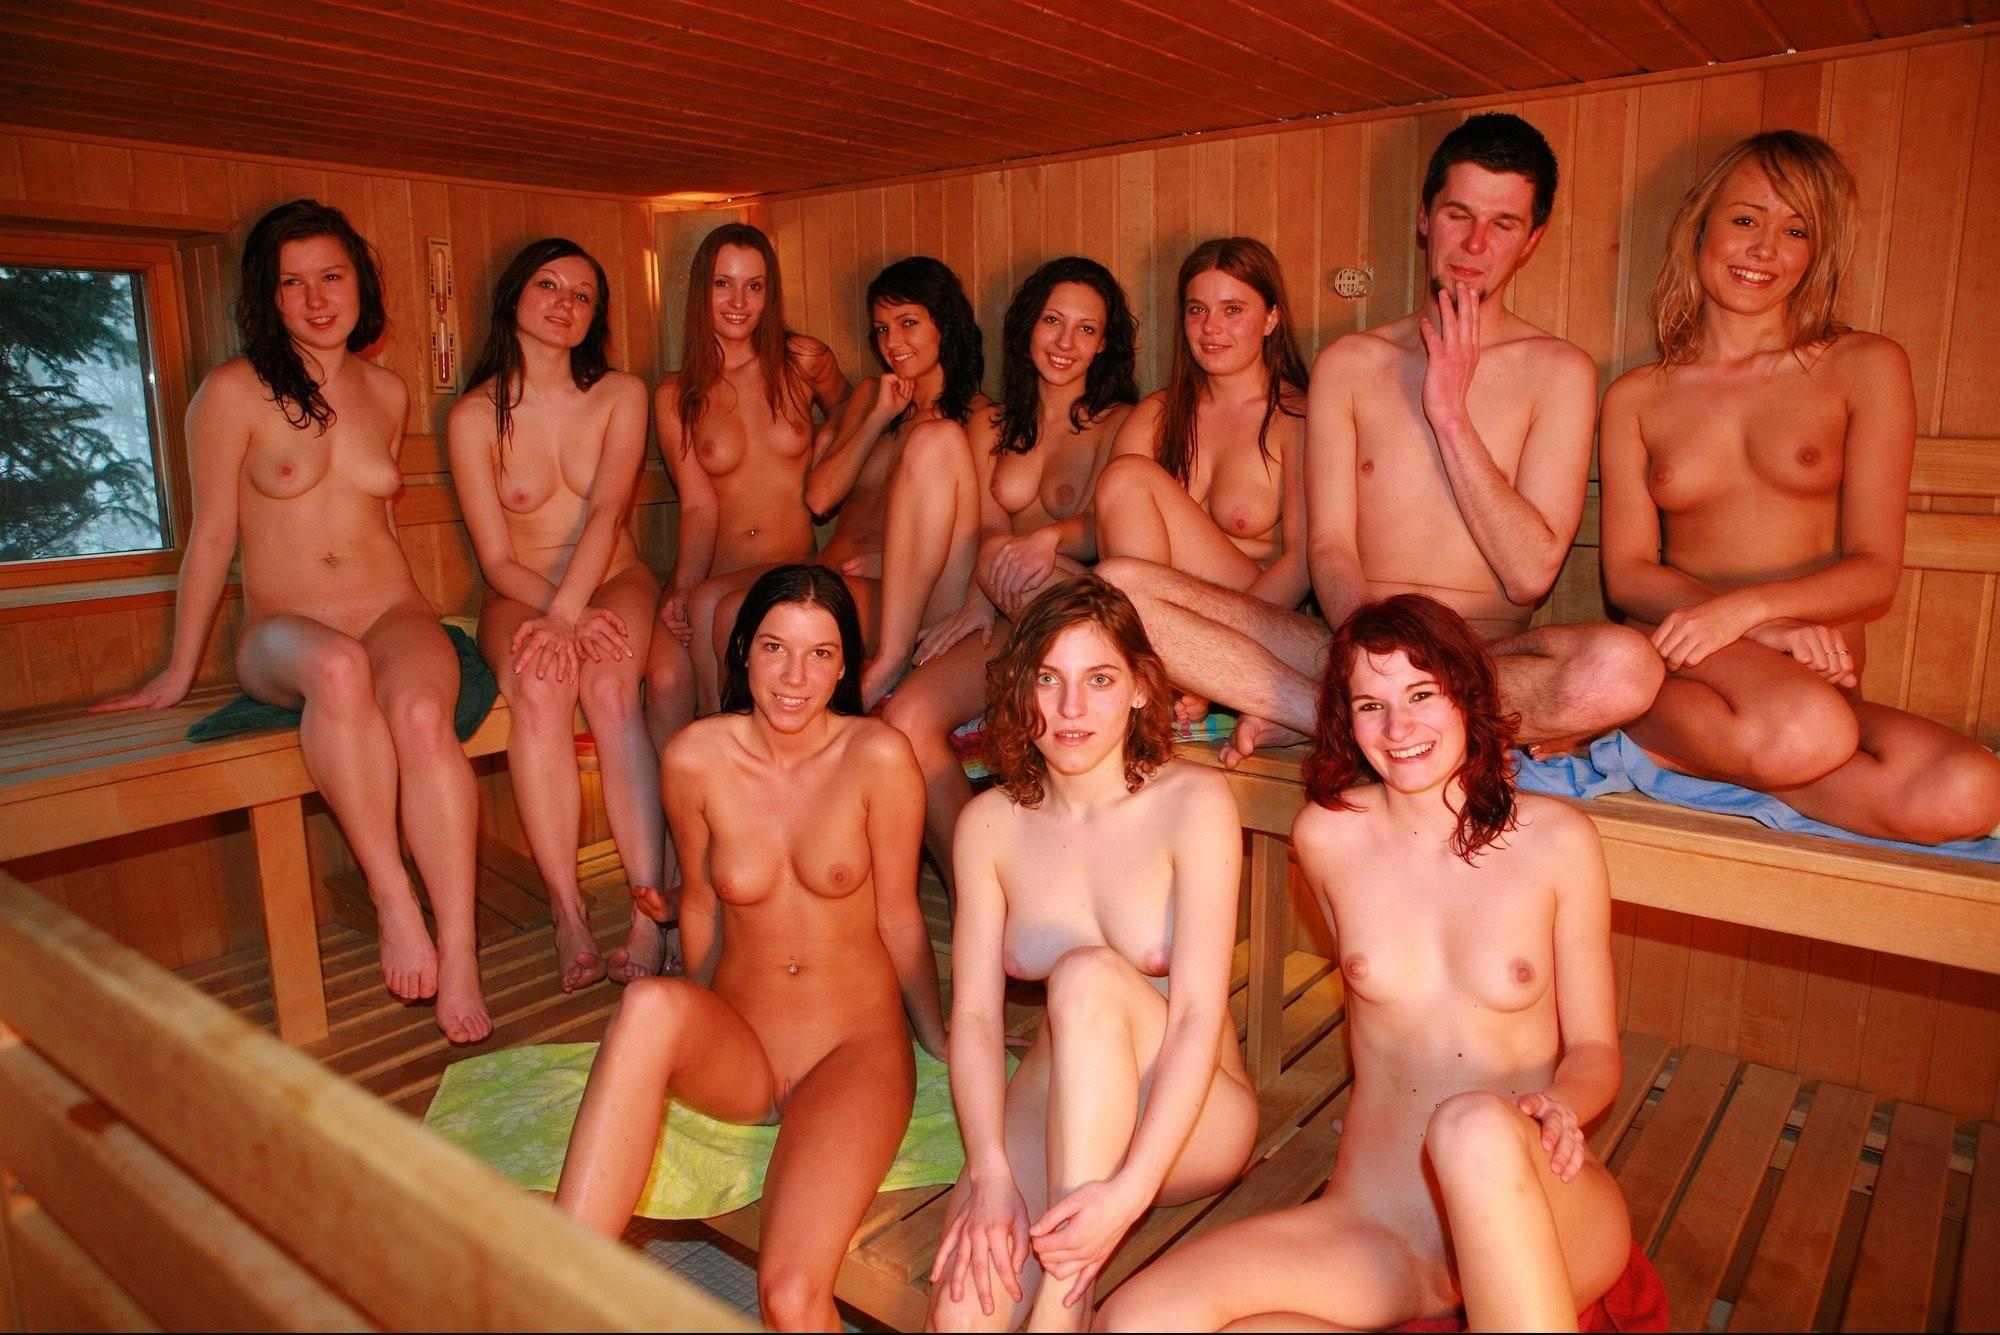 ten-girls-&-one-guy-sauna-55